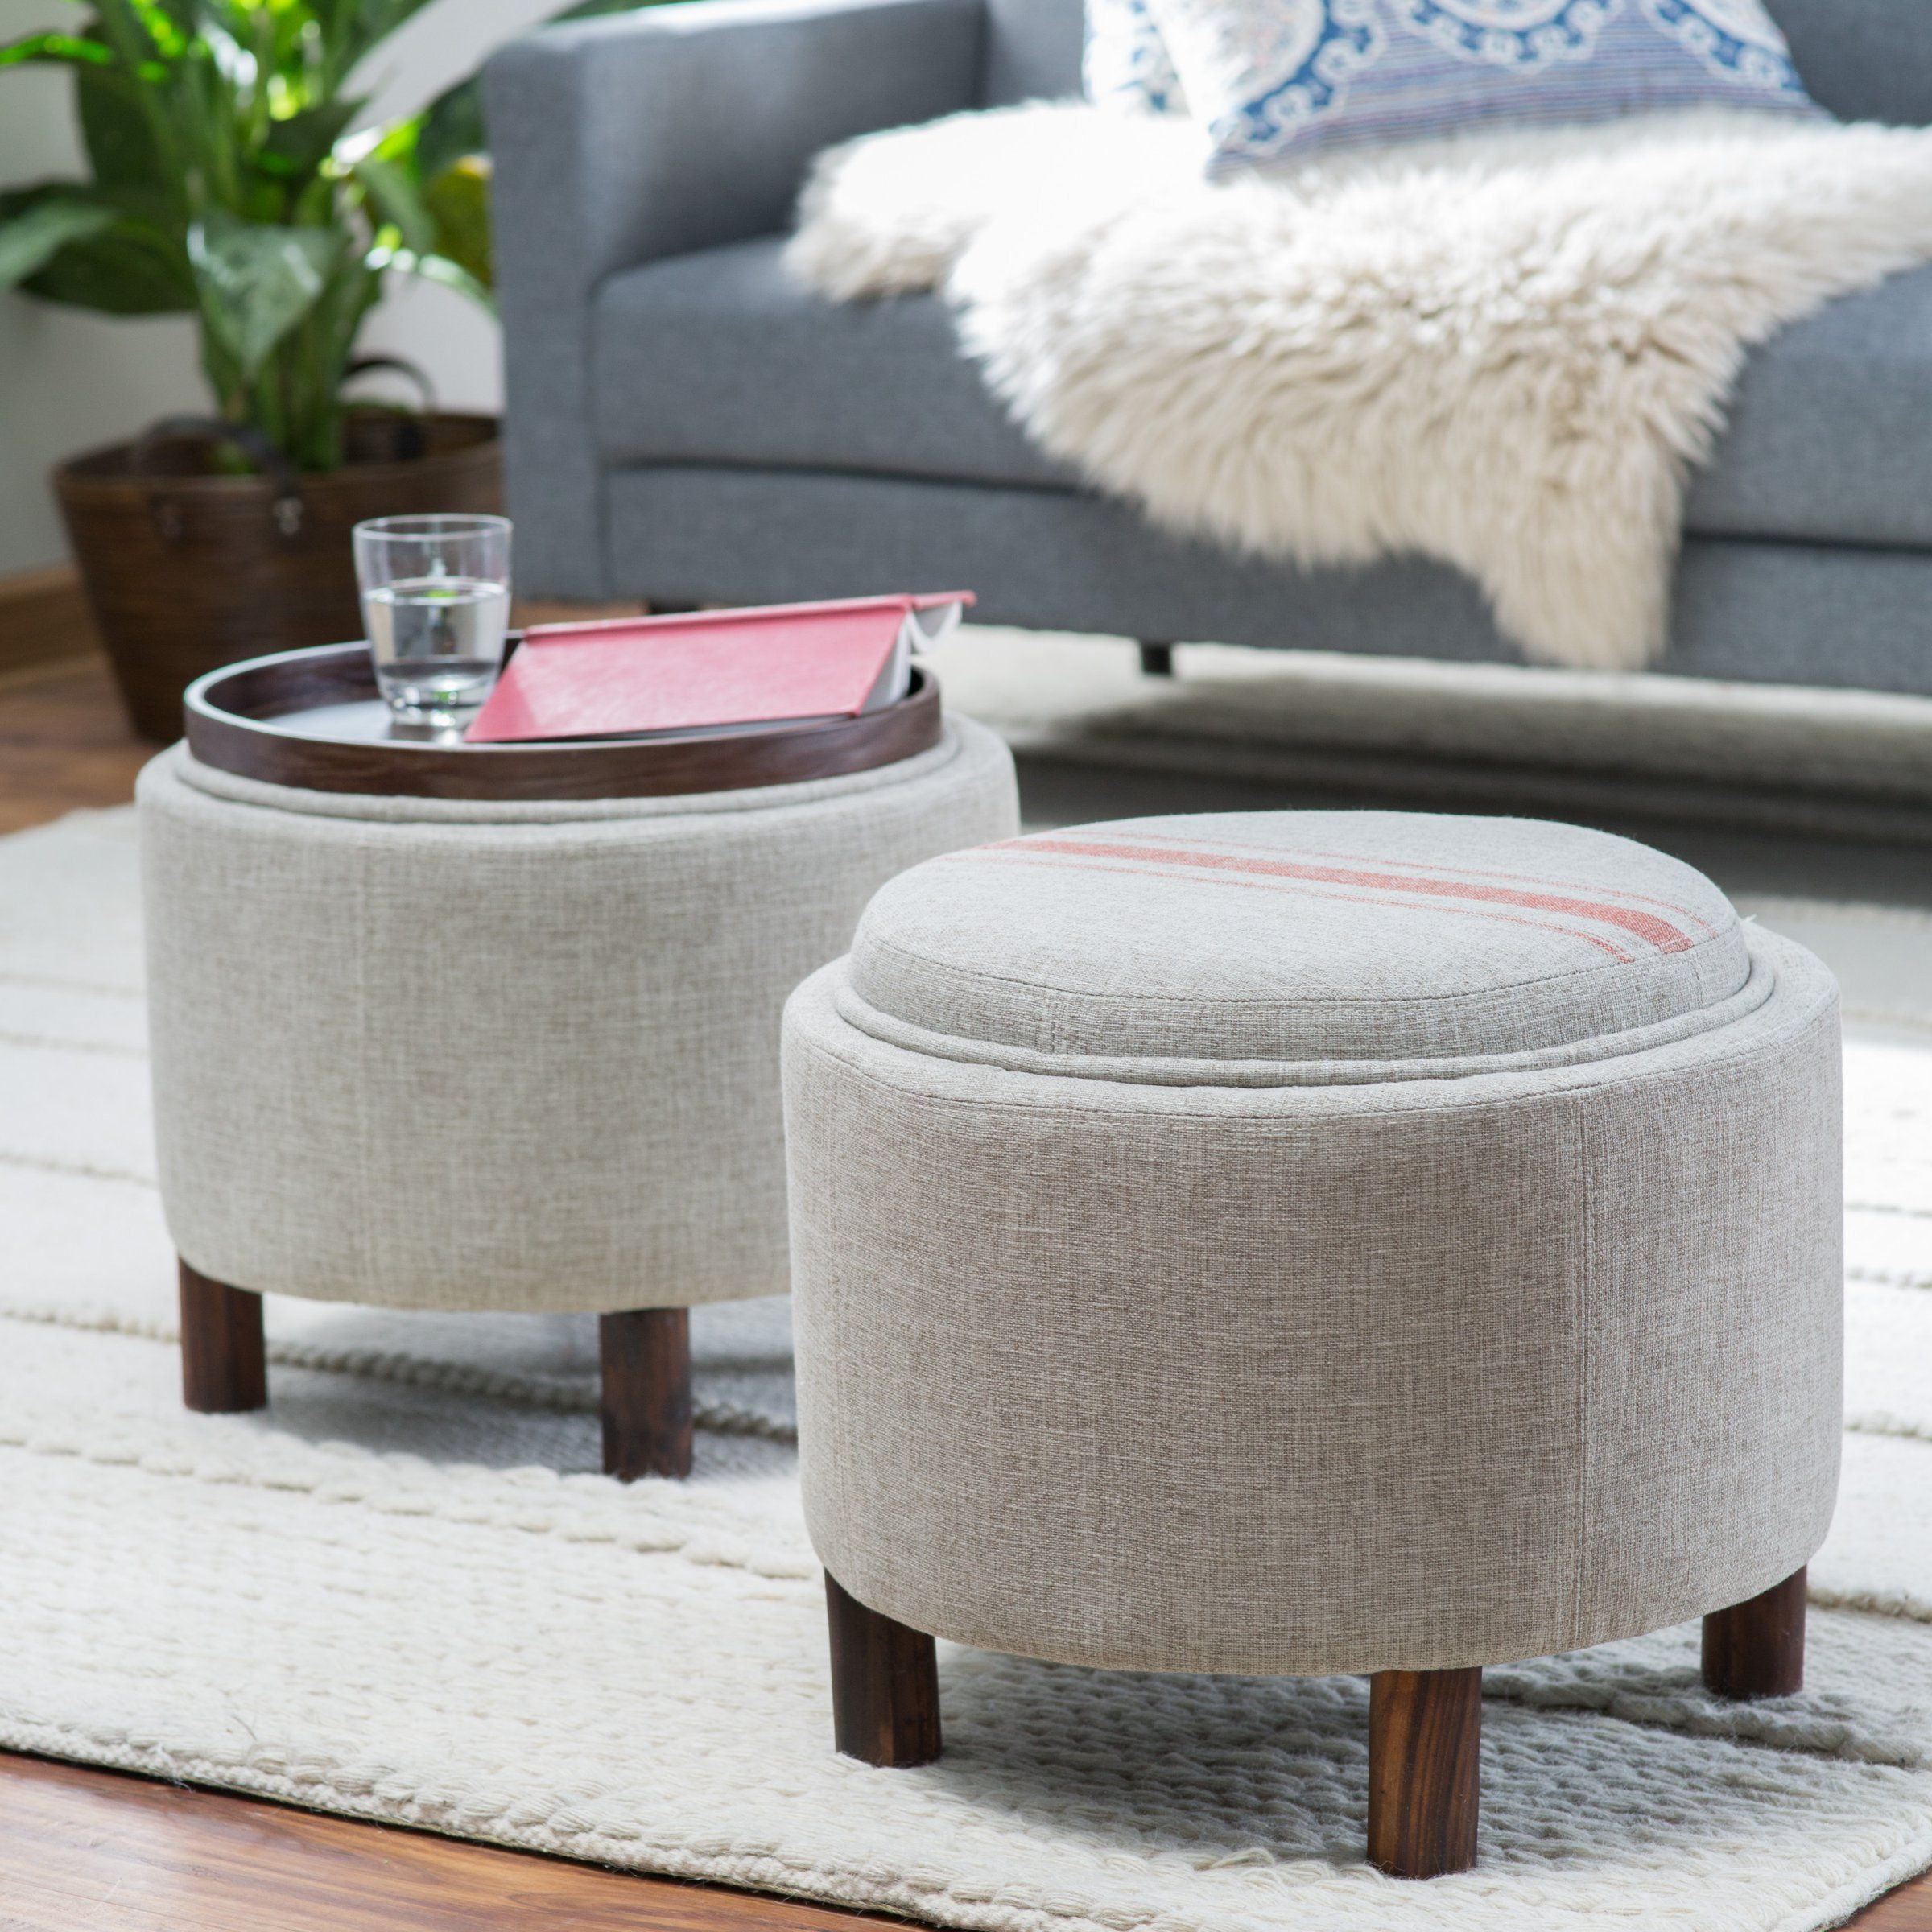 Belham Living Ingram Round Storage Ottoman With Cocktail Tray